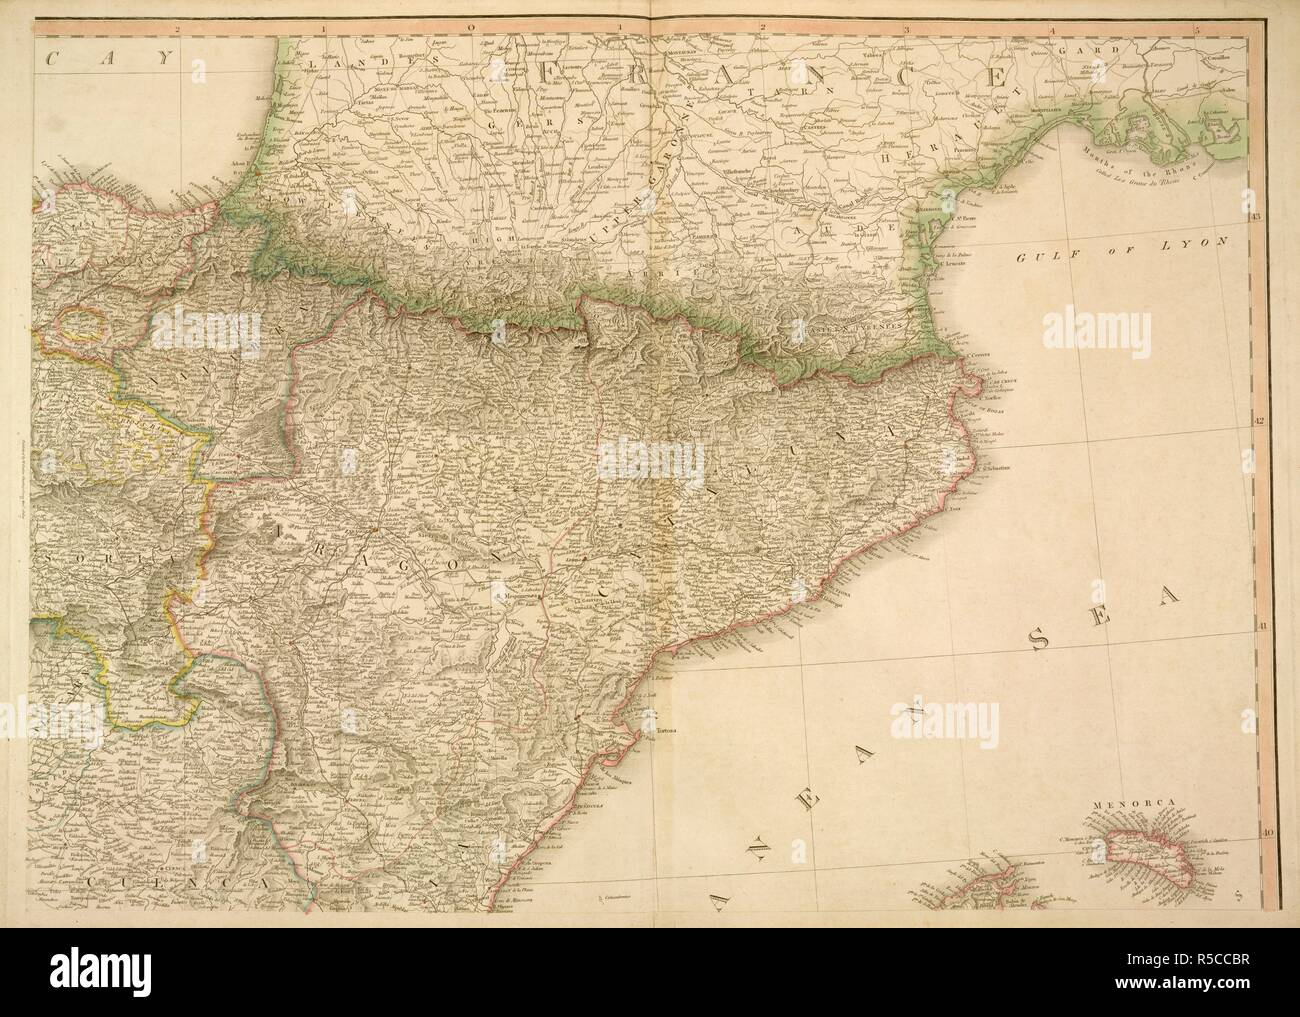 Map Of Spain Navarra.Map Of France And Spain Place Names In Bold Aragon Cataluna